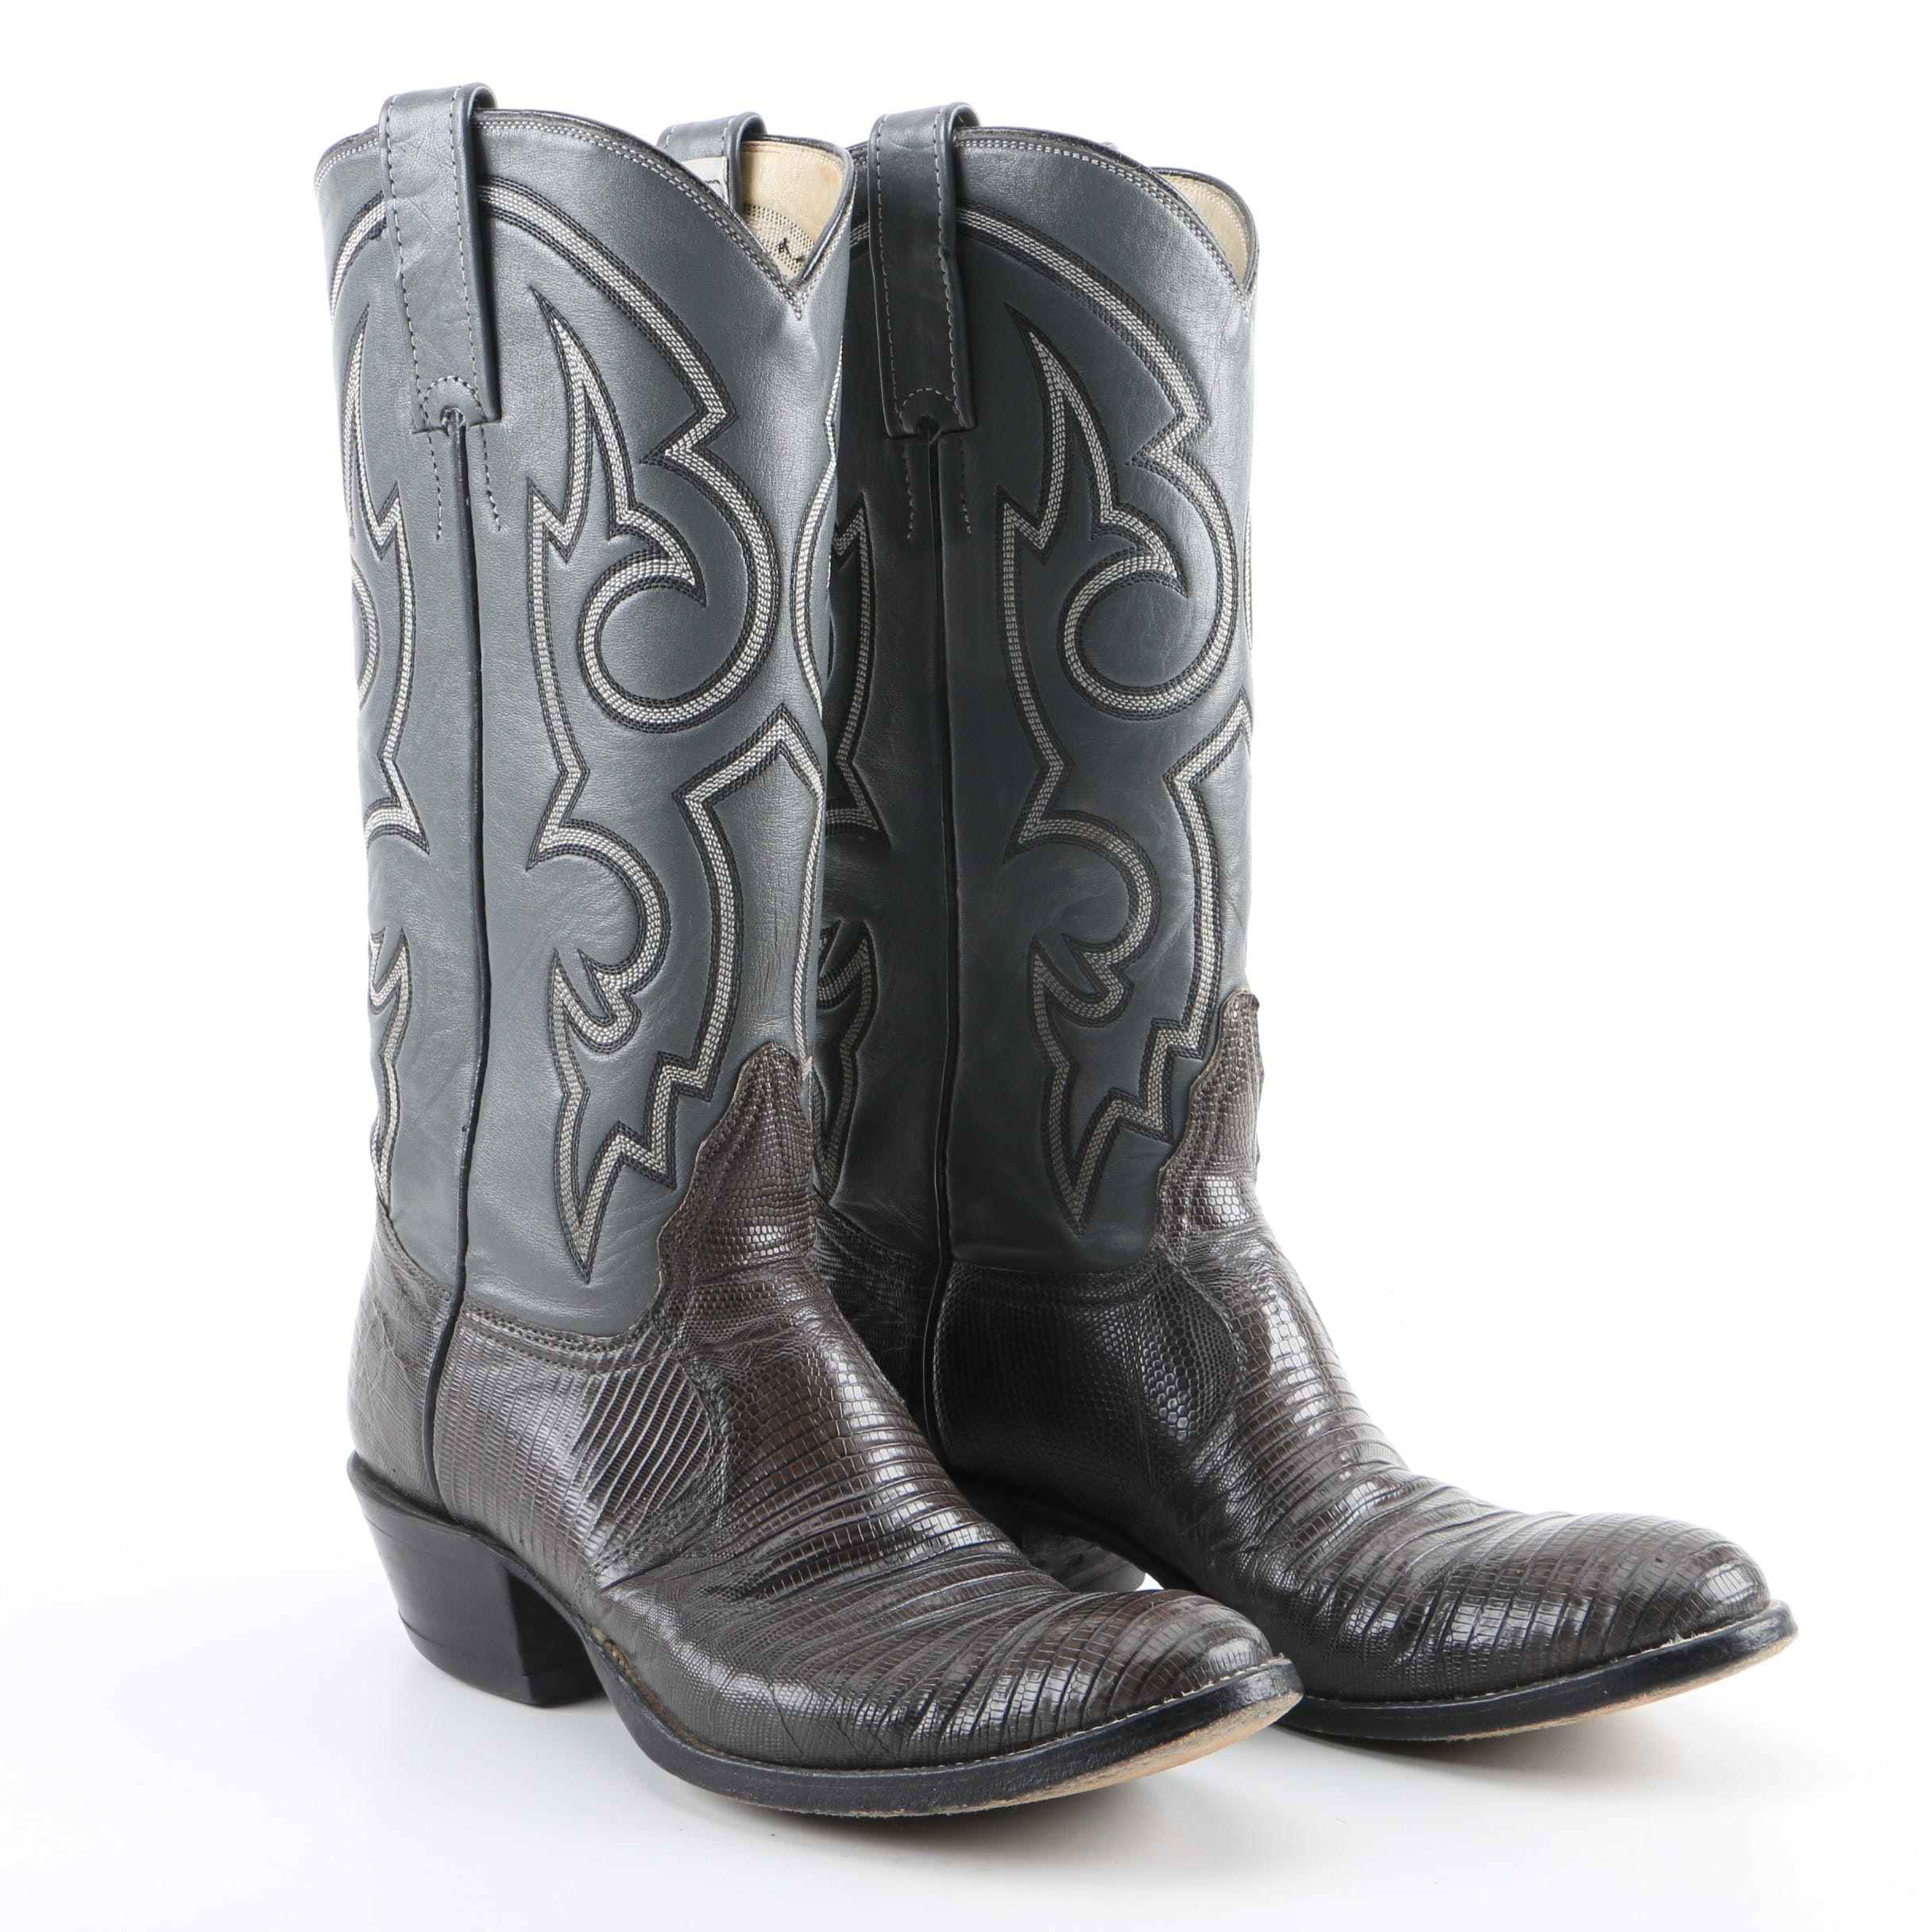 Women's Adams Boot Co. Grey Leather and Lizard Skin Western Boots